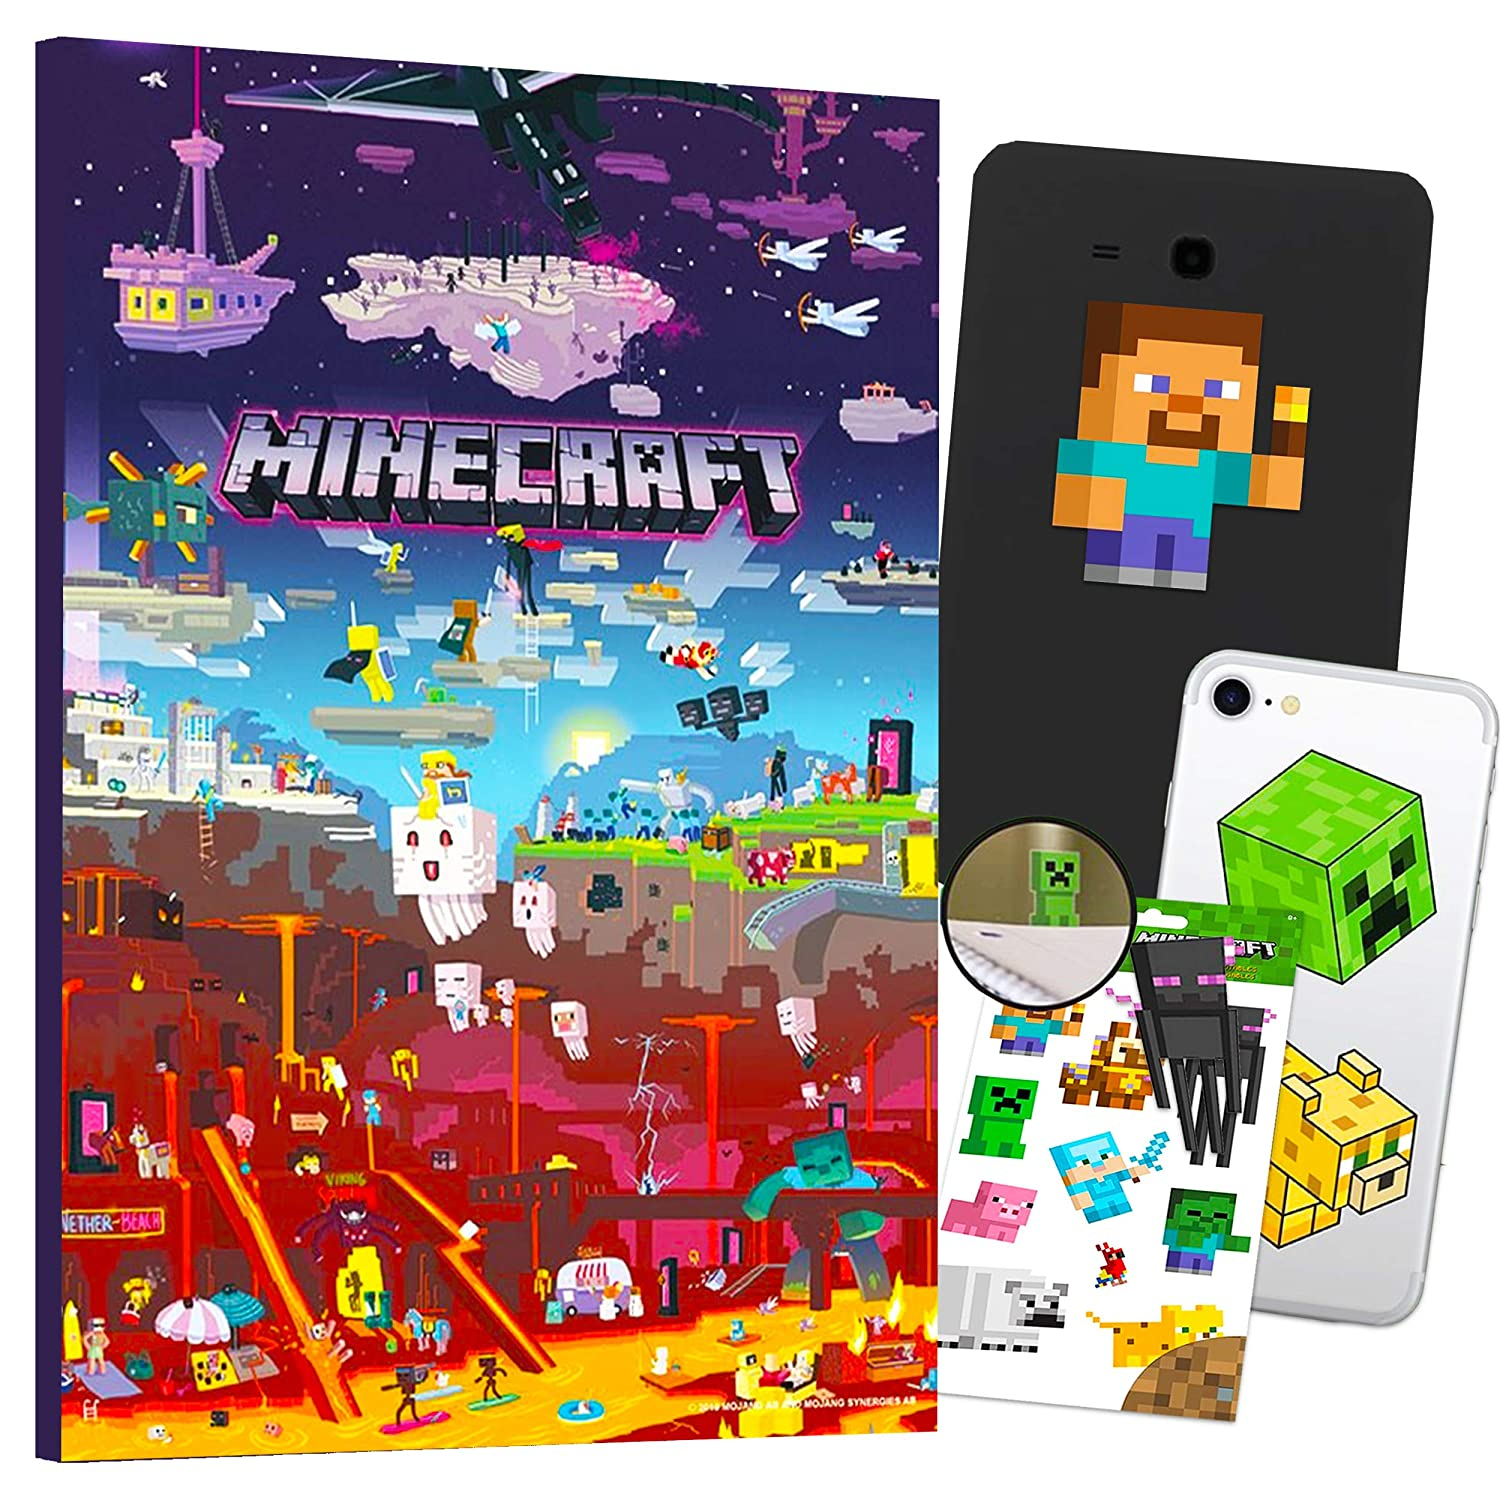 Minecraft Decorations Artwork Wall Art Ultimate Bundle ~ 24 Pcs Minecraft Poster, Stickers, Decals for Walls Laptop Car (Minecraft Room Decor for Boys Girls Kids)